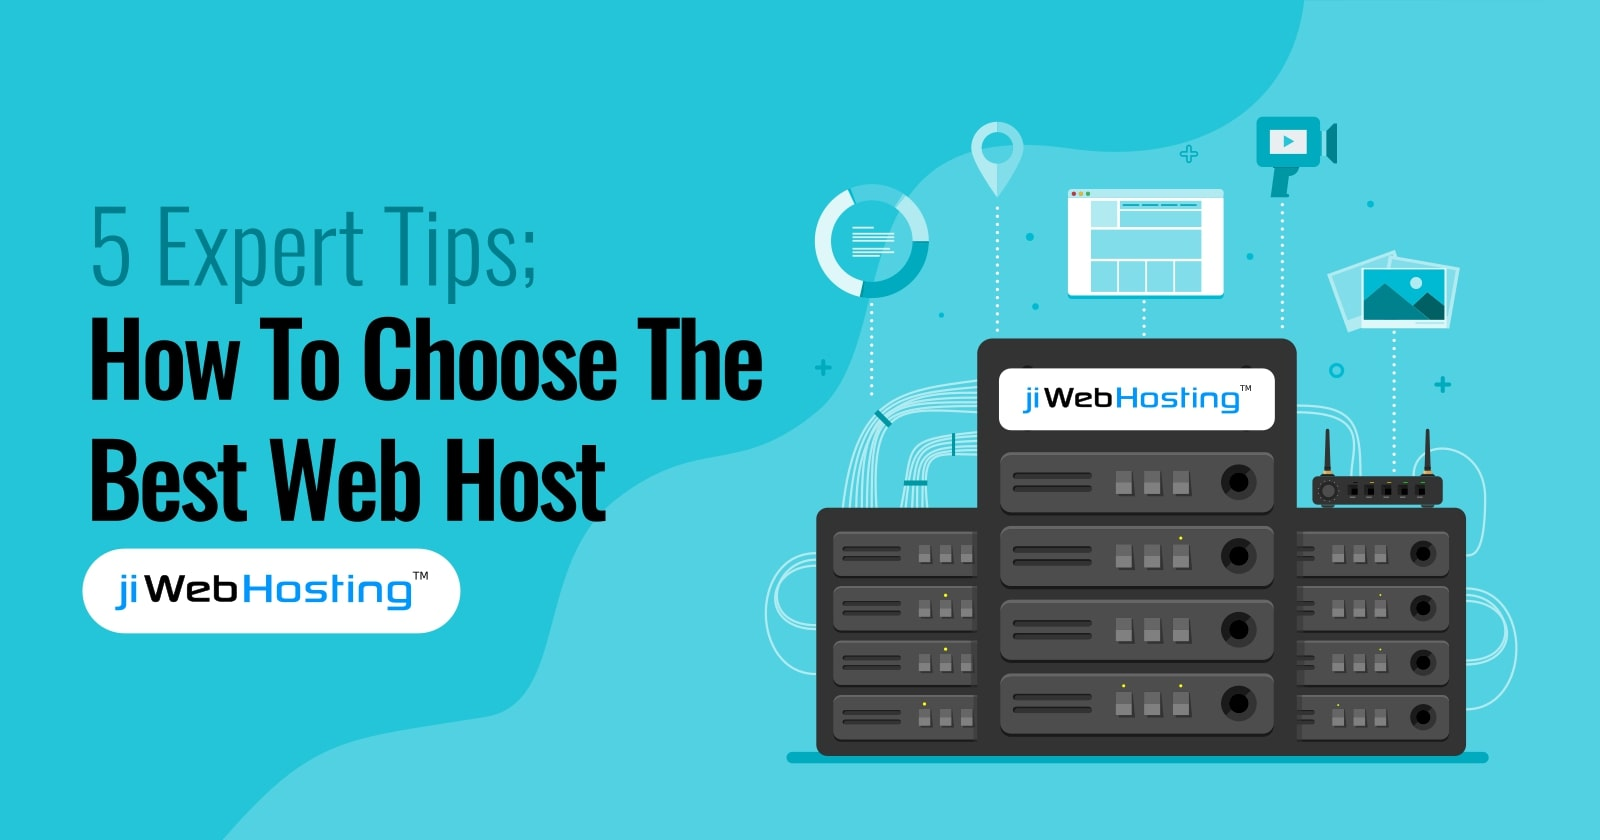 5 Expert Tips: How To Choose The Best Web Host